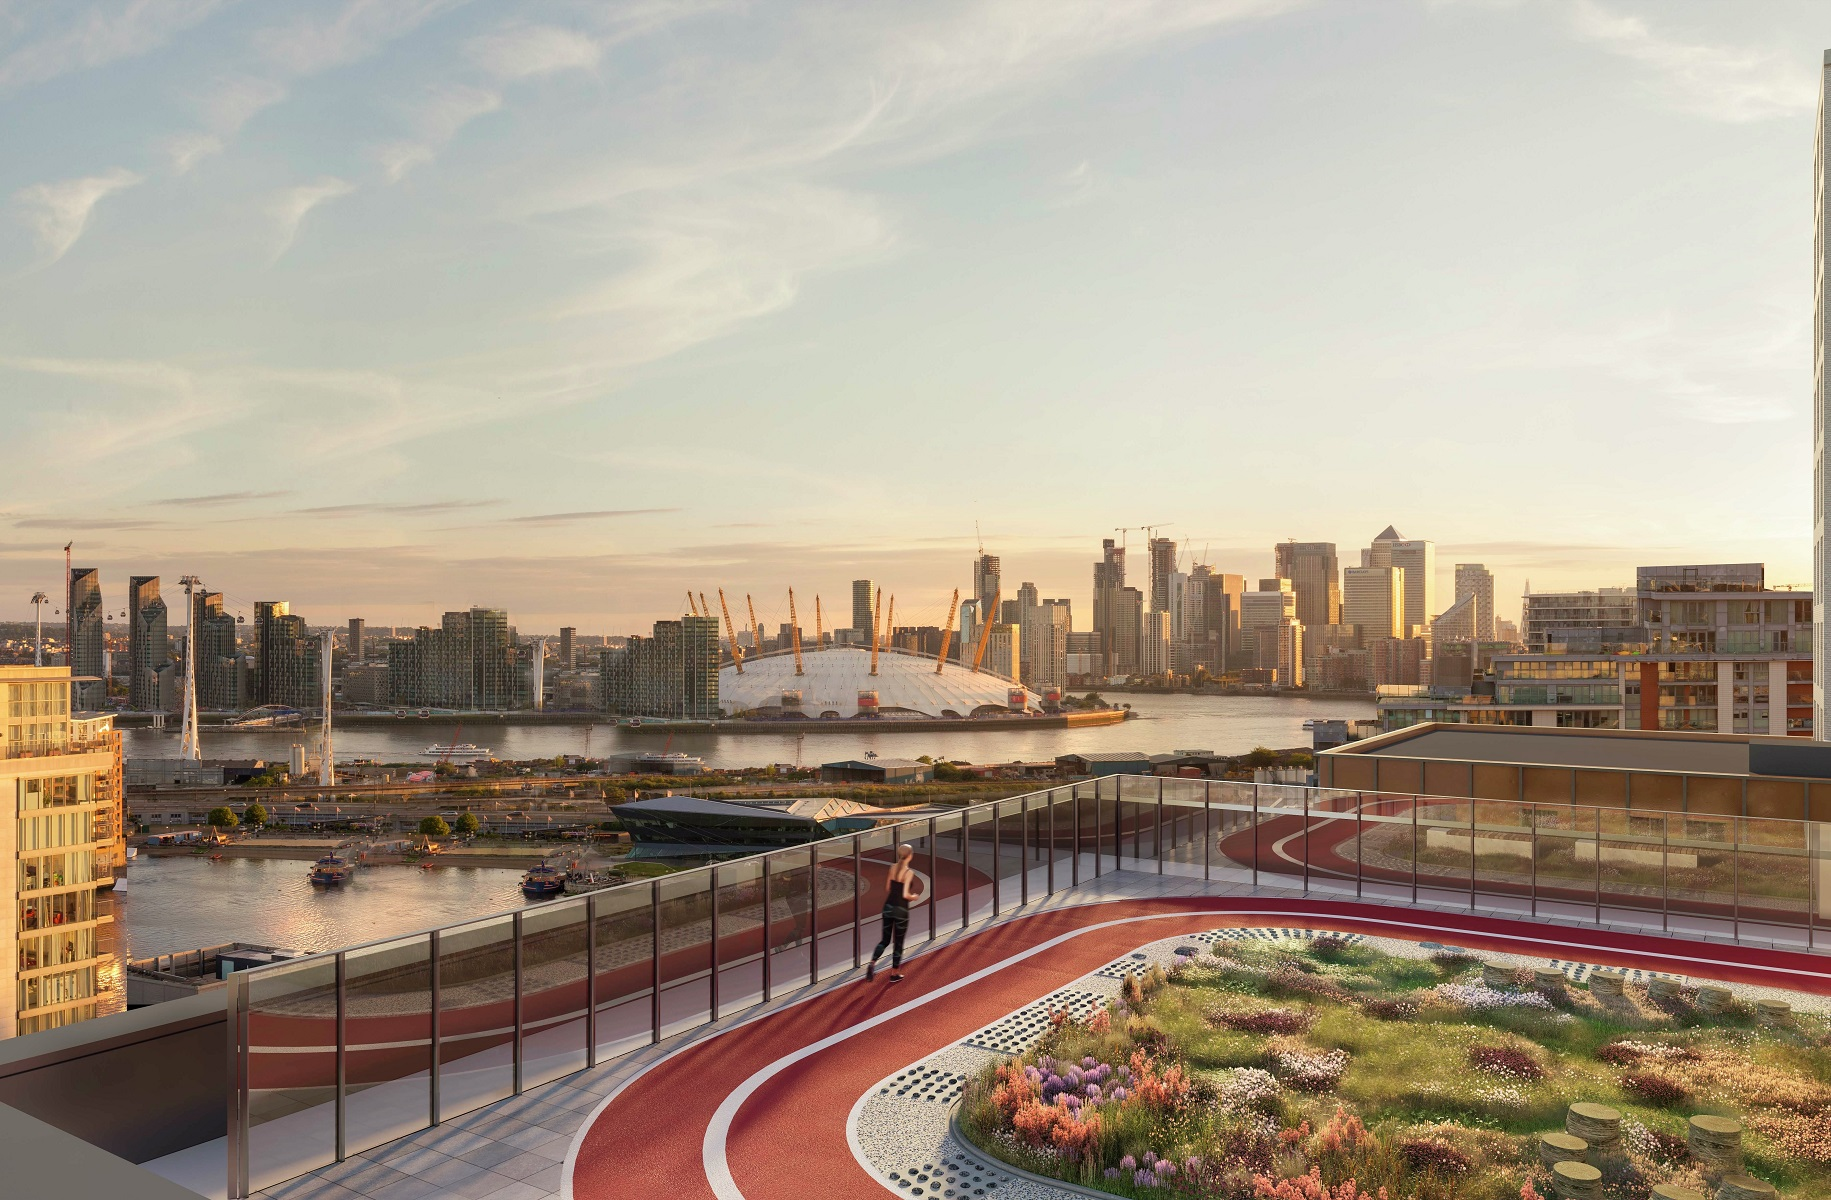 Image of the running track on the rooftop of Royal Eden Docks with the city in the background